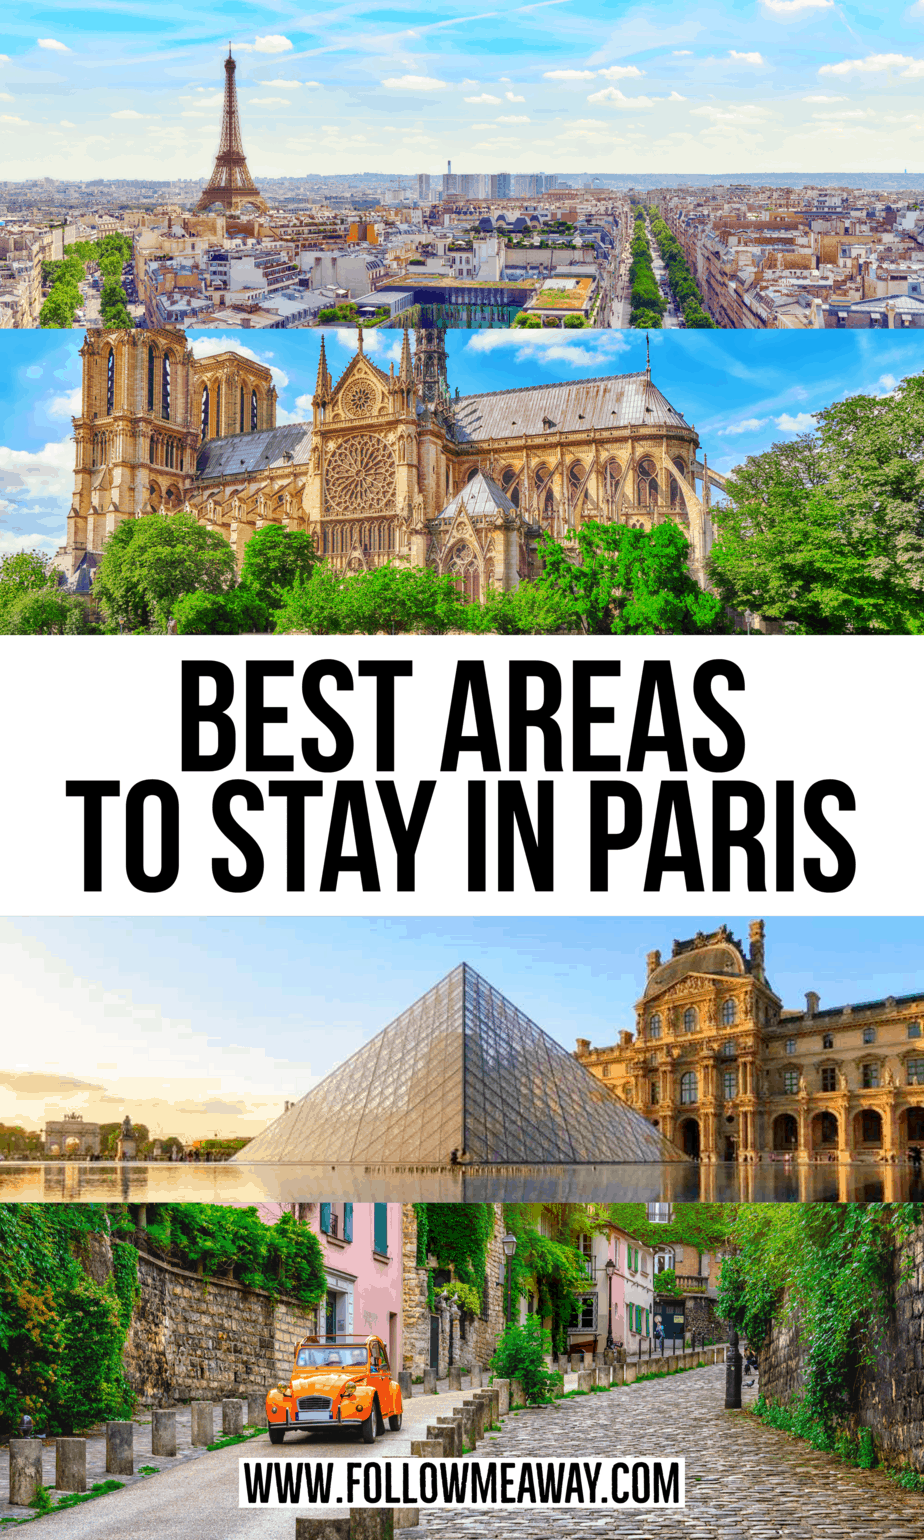 best areas to stay in paris (2)